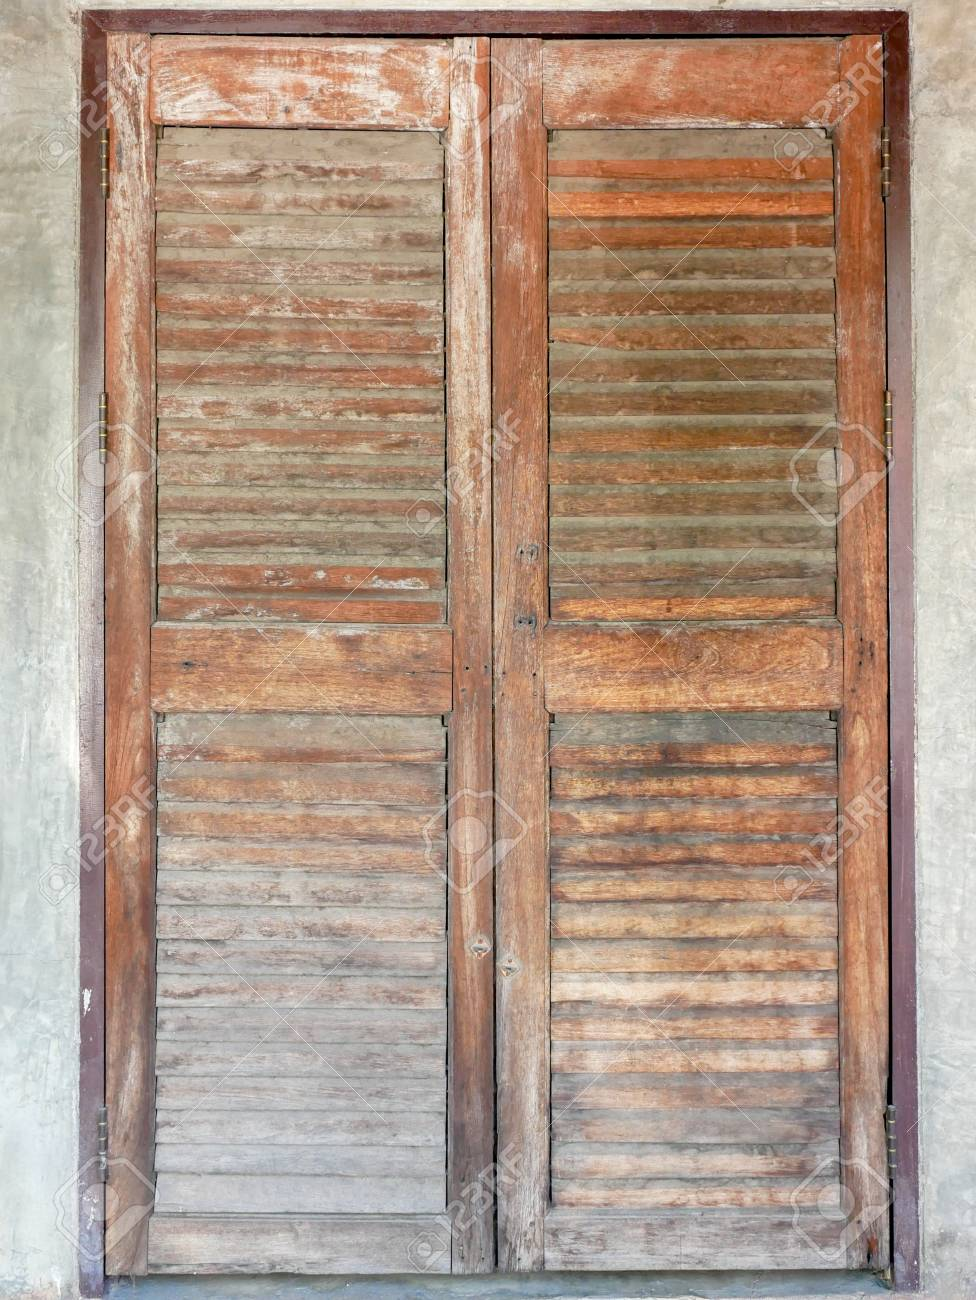 old wooden old doors background texture foto royalty free gravuras